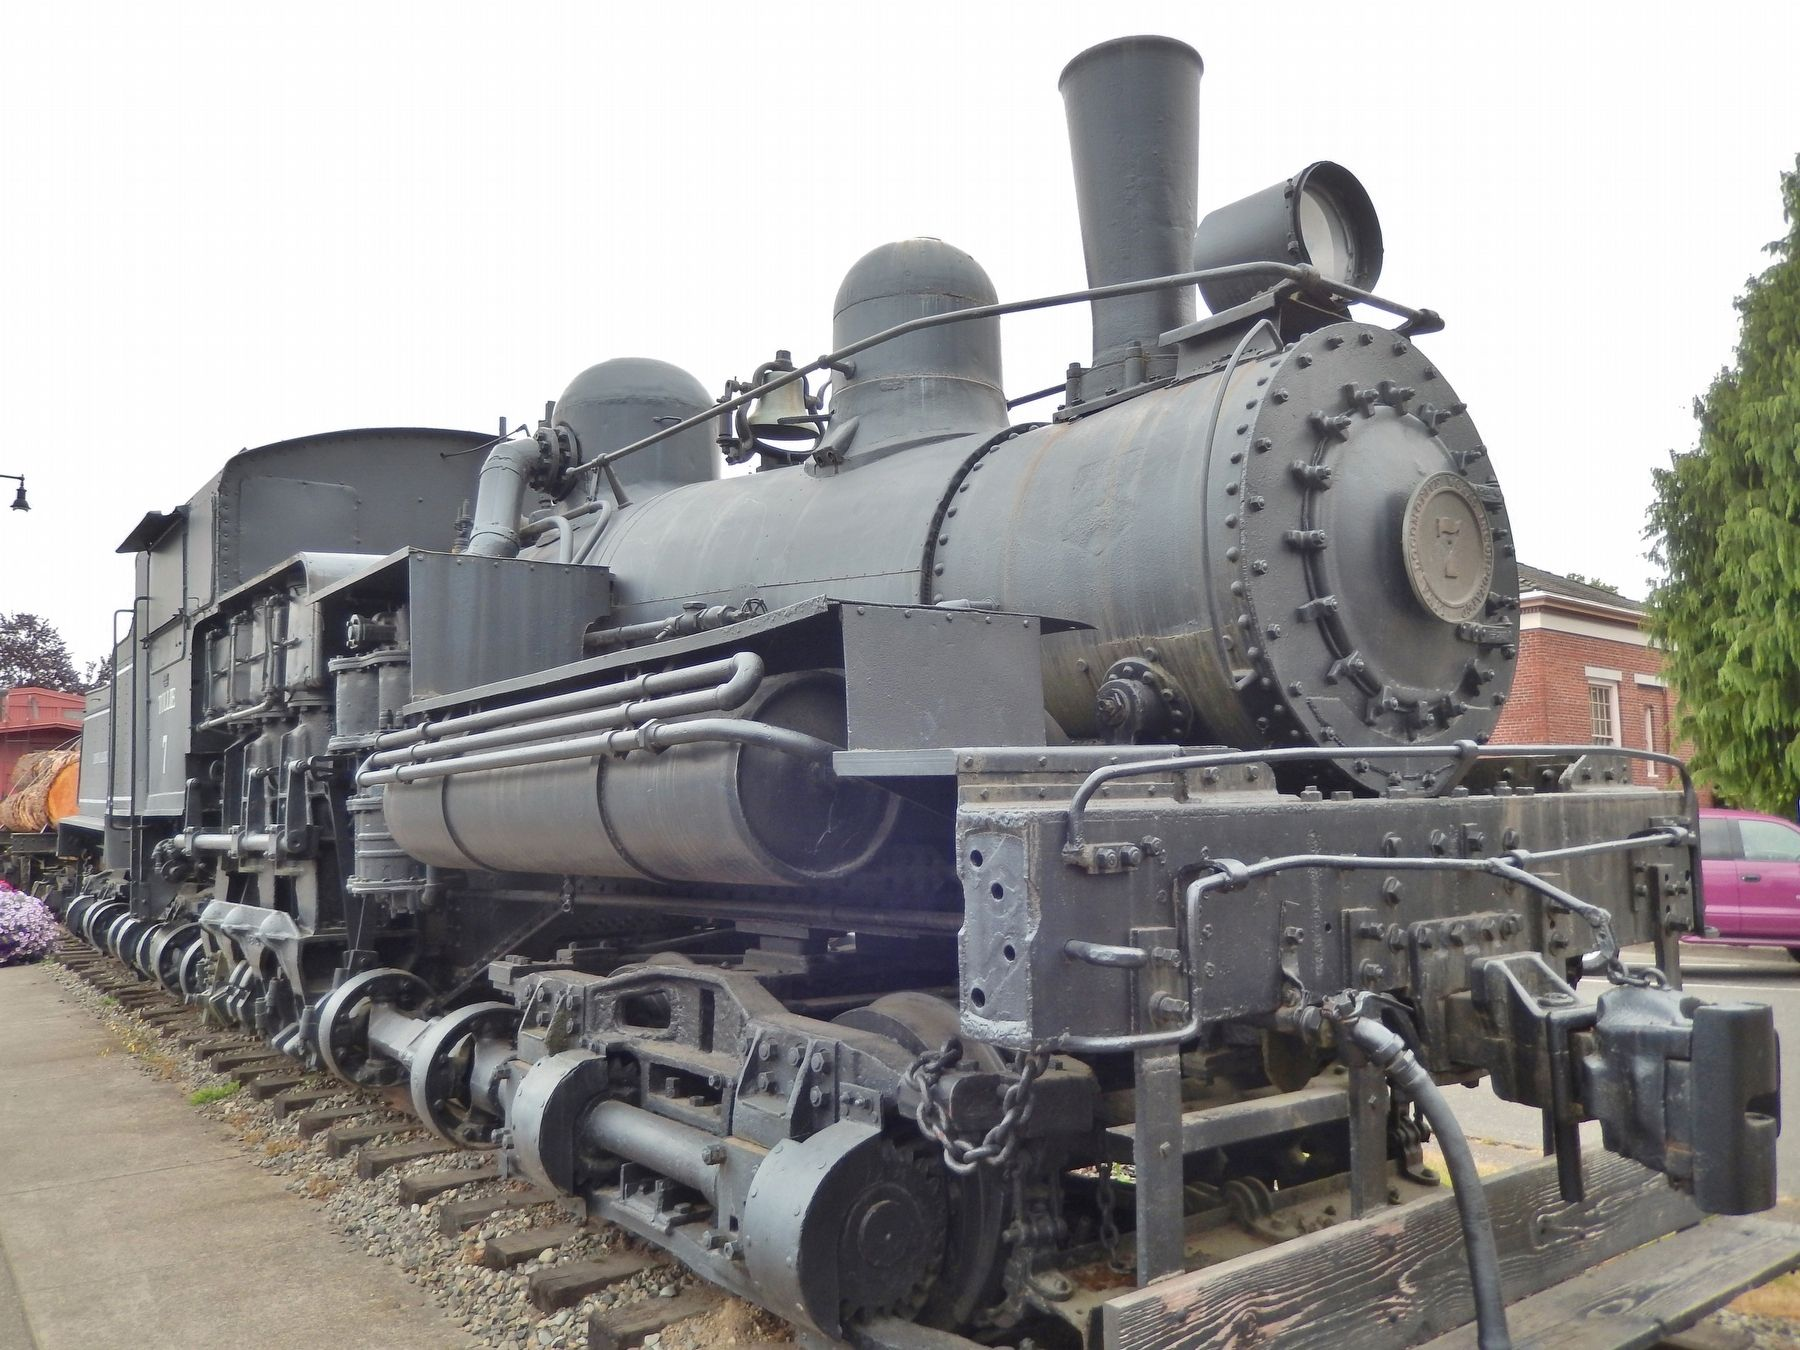 Simpson Logging Company Shay Locomotive #7 (<i>front view</i>) image. Click for full size.